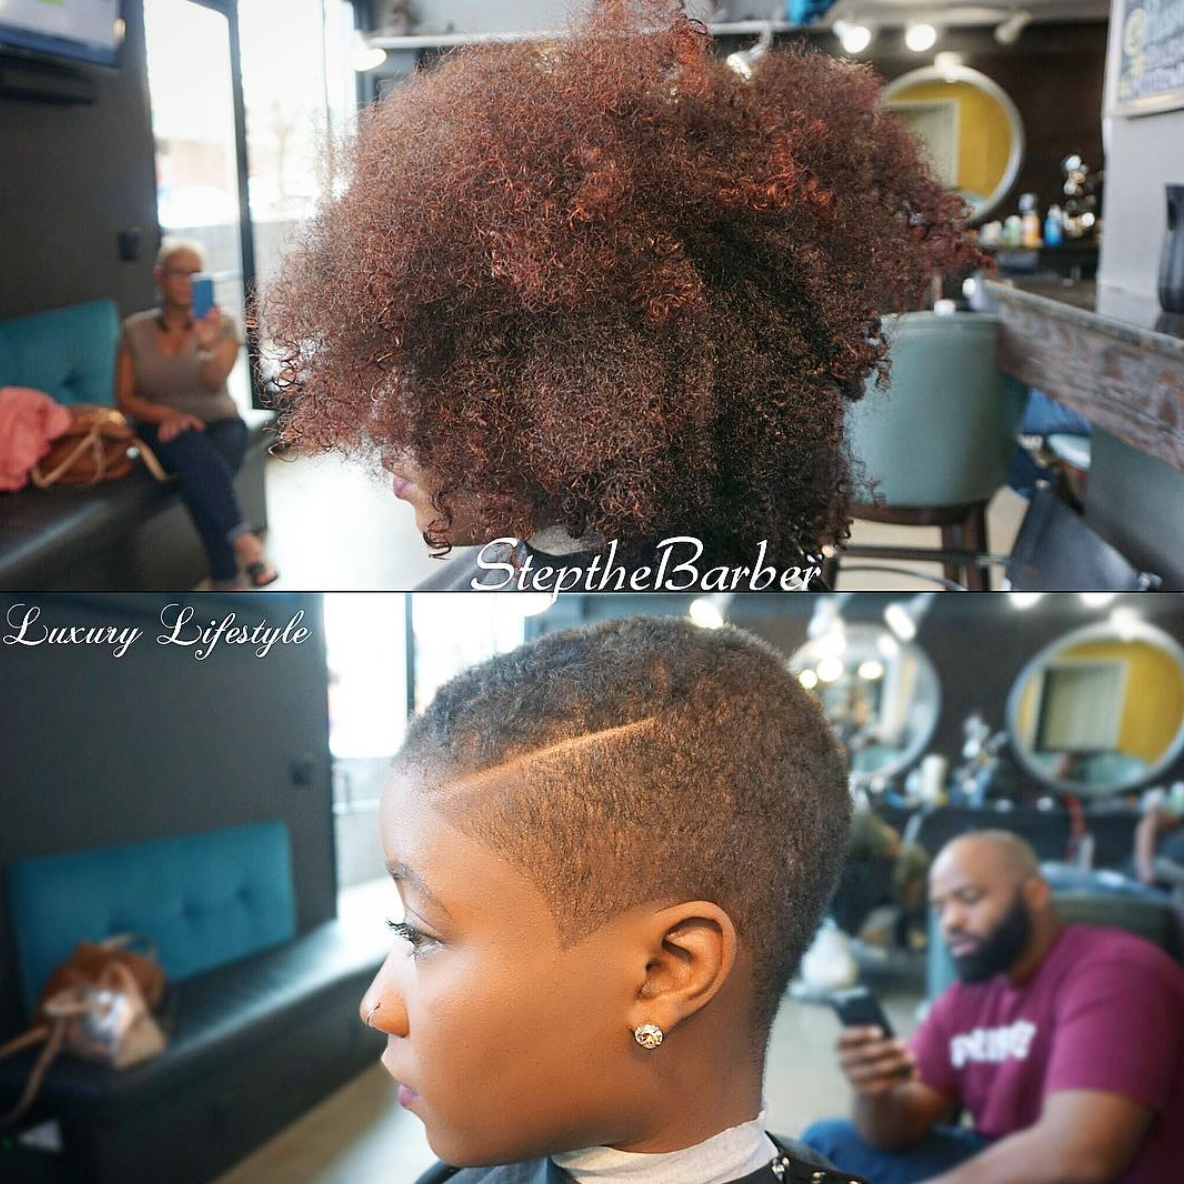 Natural hairstyles for short hair black women hair and tattoos - Find This Pin And More On Short Haircuts Big Chop Via Black Hair Information